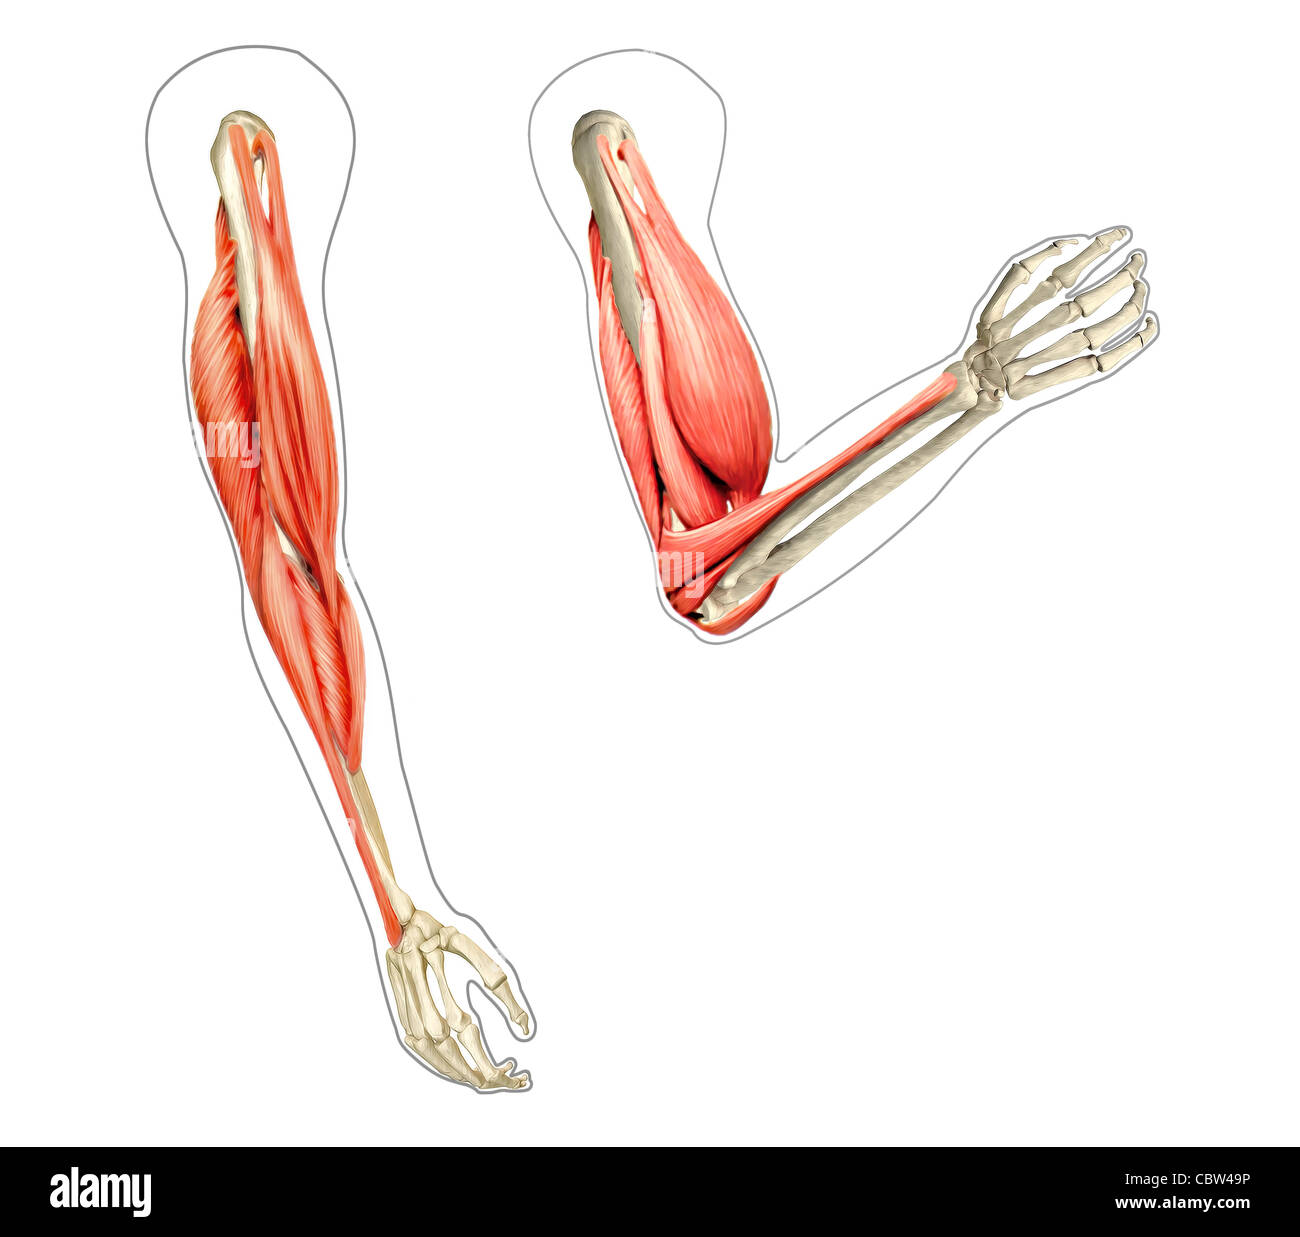 Human Elbow Stock Photos & Human Elbow Stock Images - Alamy